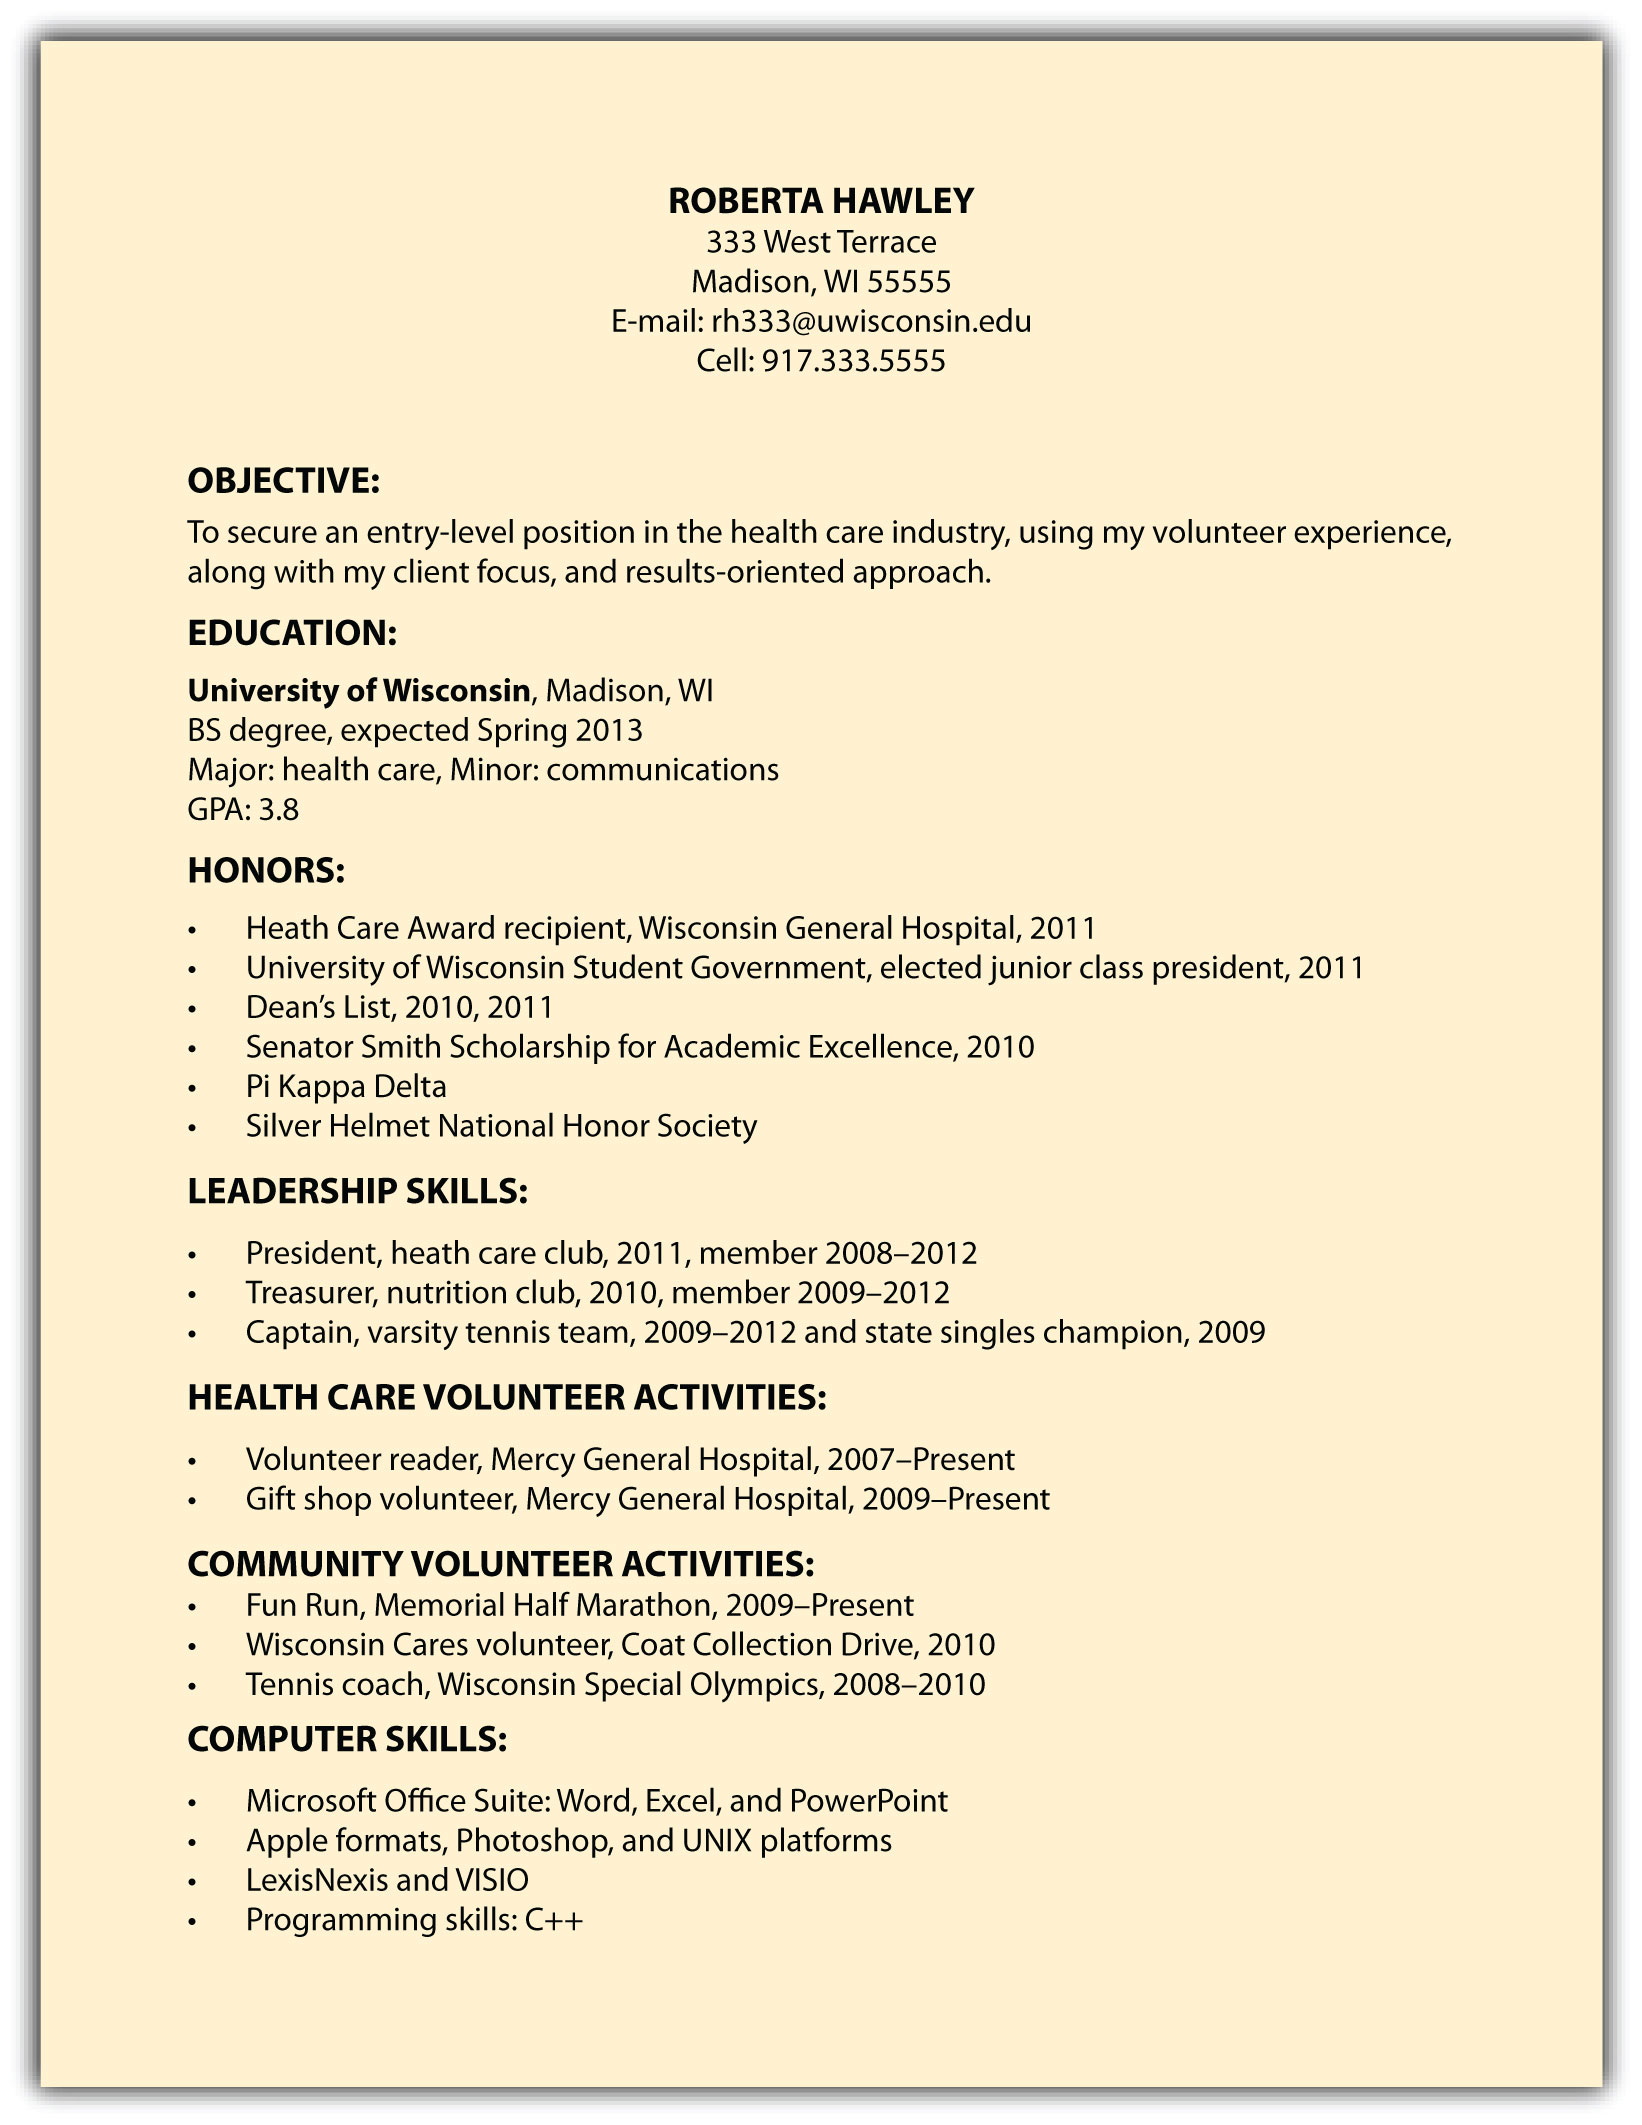 resume for babysitter getessay biz job resume sample babysitter job description resume babysitter put nanny cna - How To Put Babysitting On A Resume